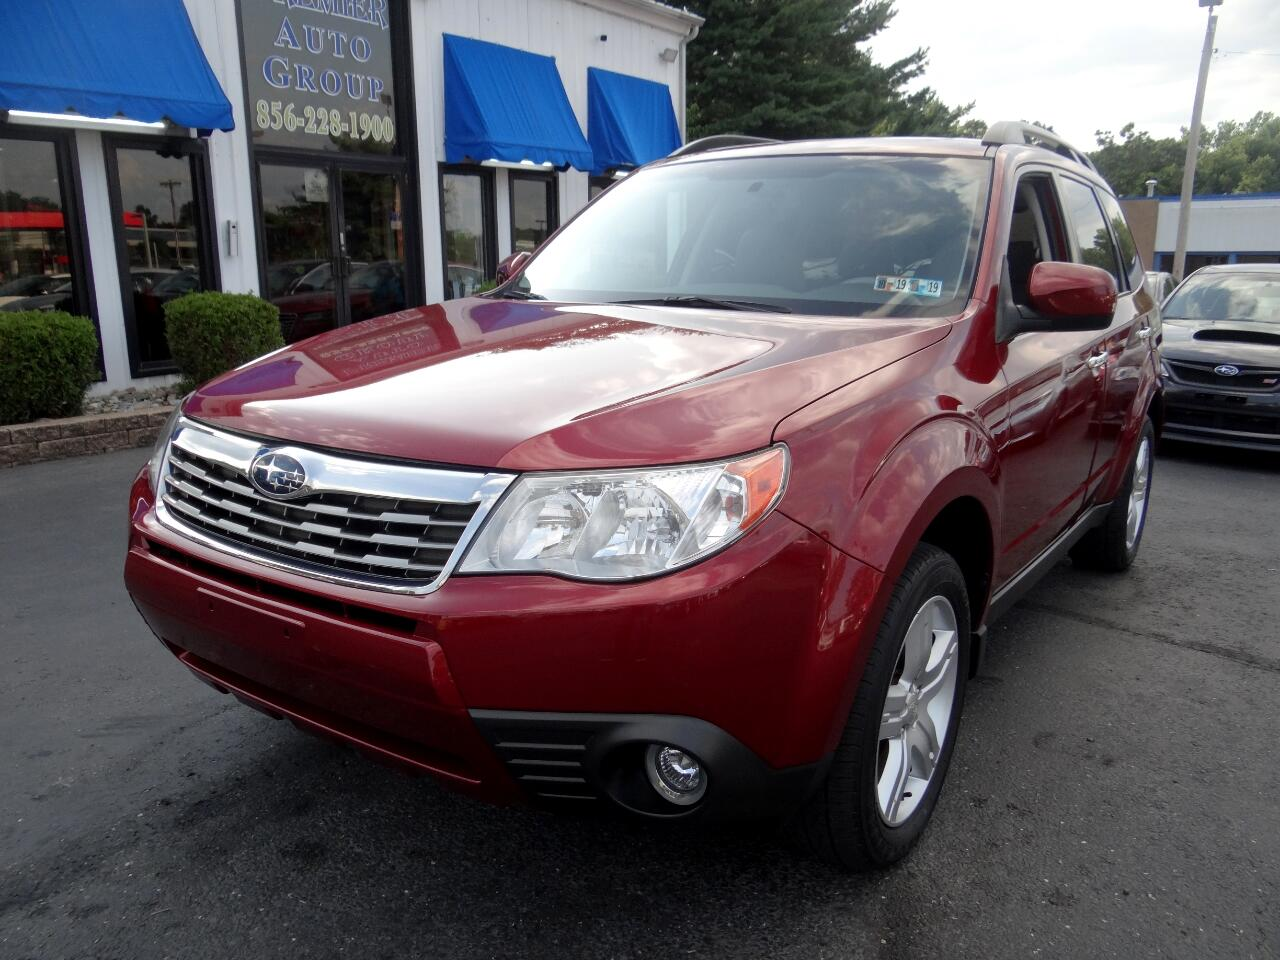 2010 Subaru Forester 4dr Auto 2.5X Limited w/Navigation System